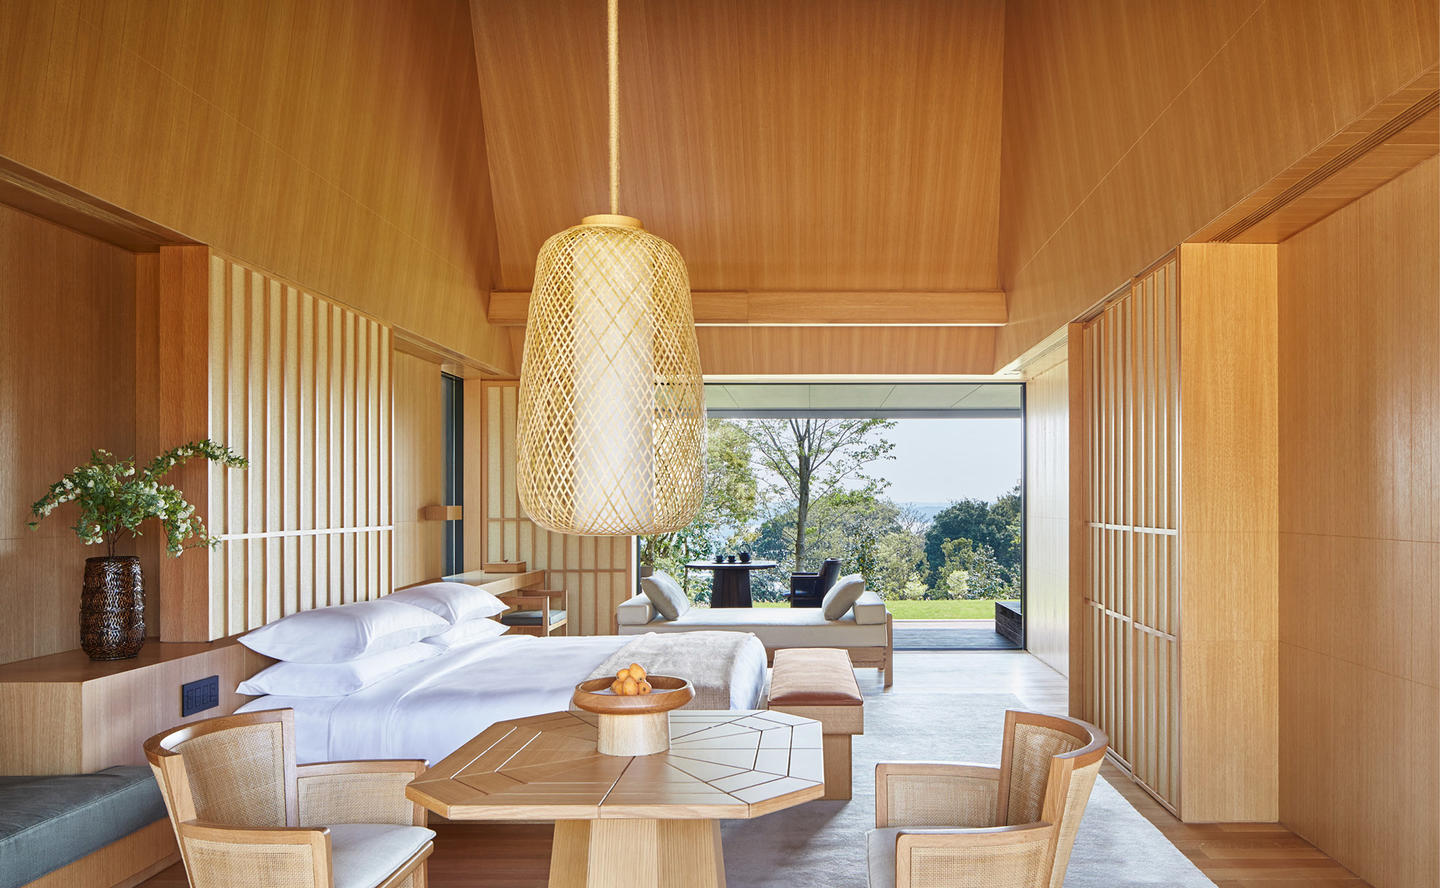 Bedroom, Sora Suite - Amanemu, Japan